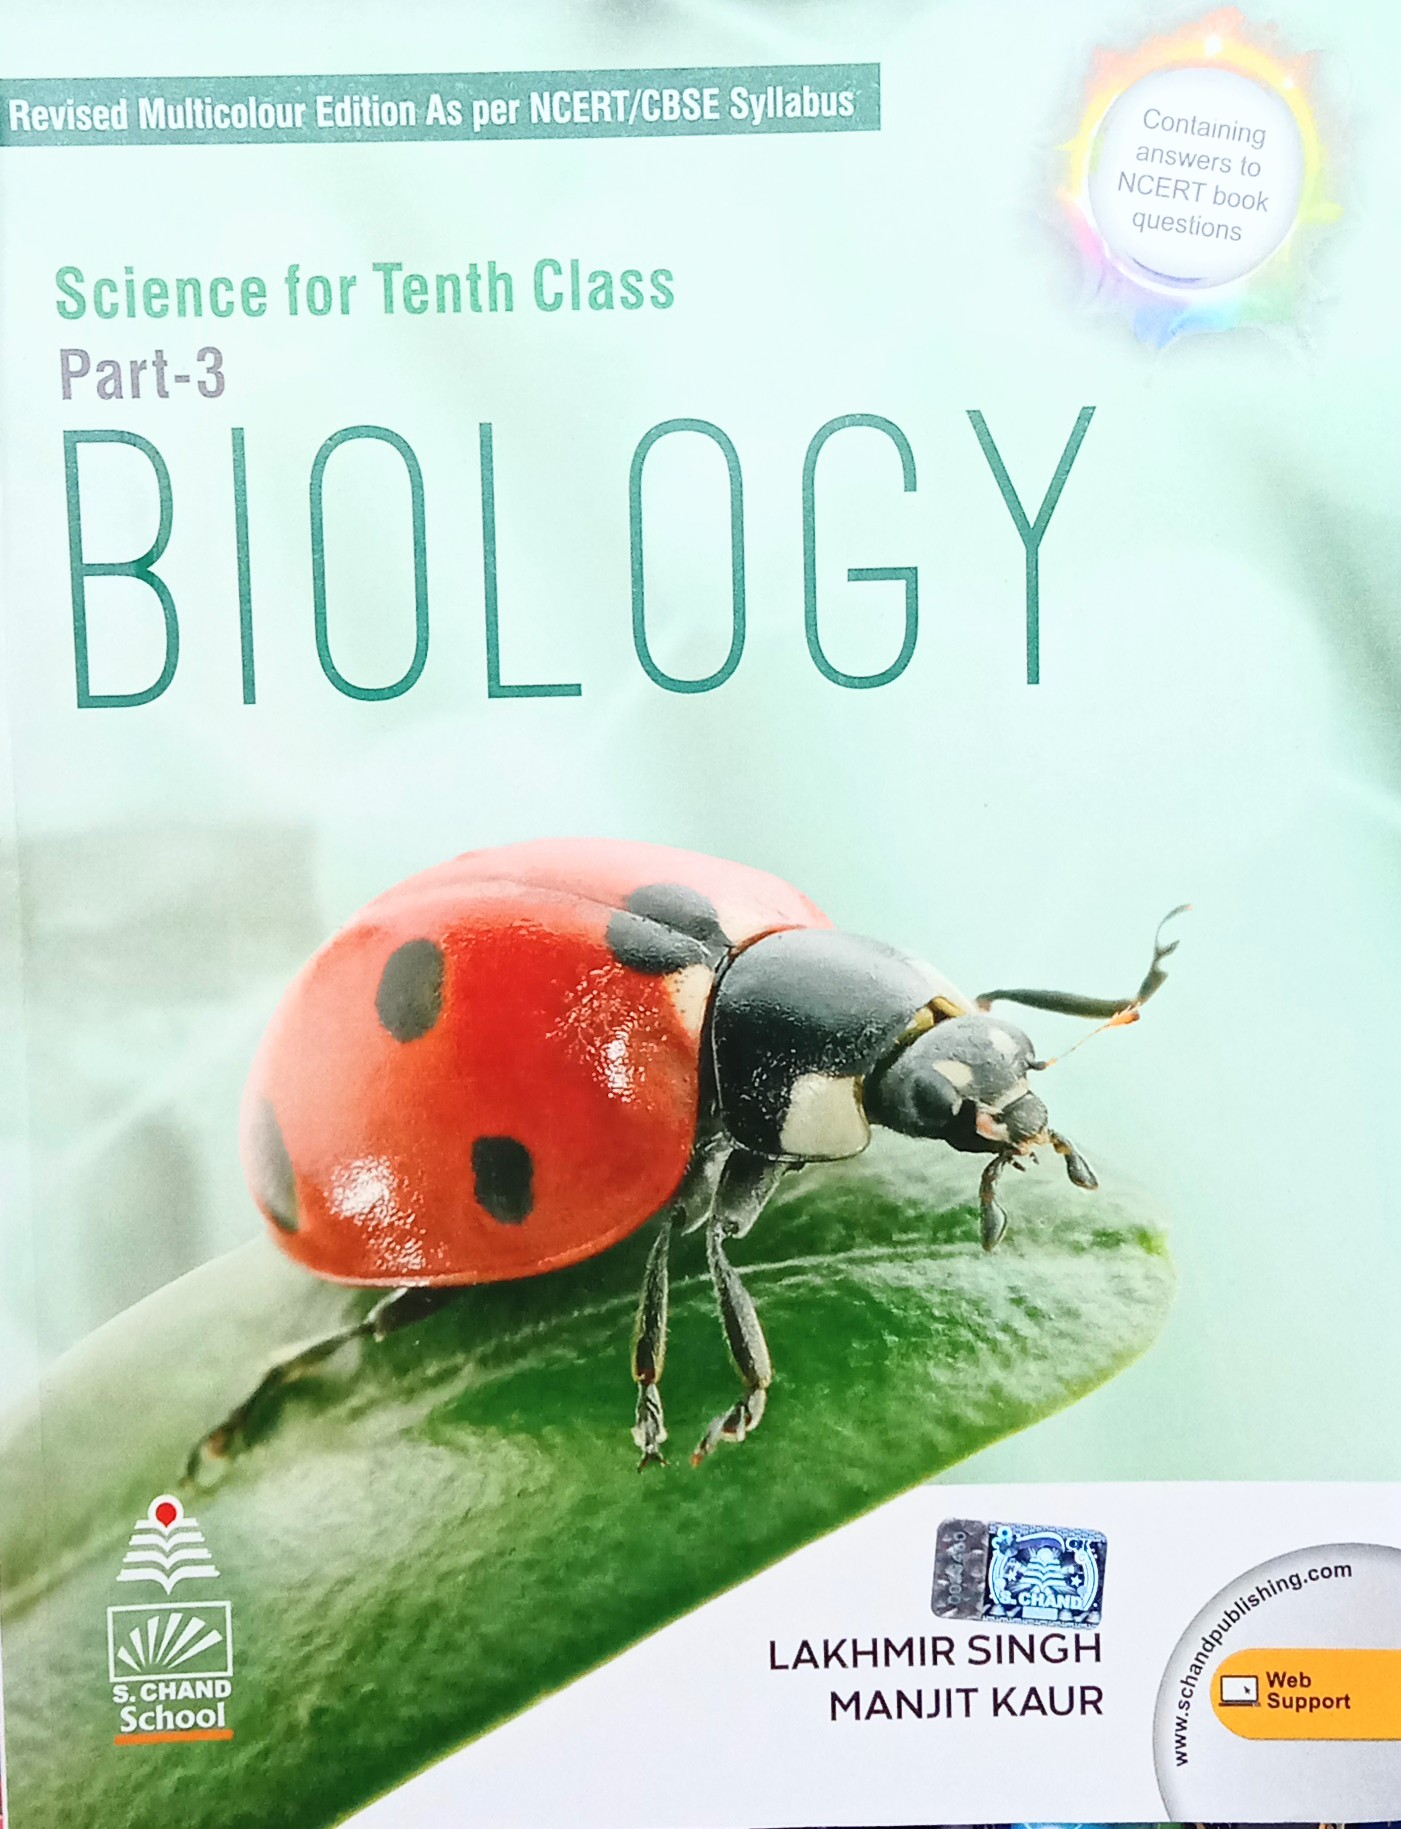 Science for Tenth Class (Part-3) Biology By S. Chand